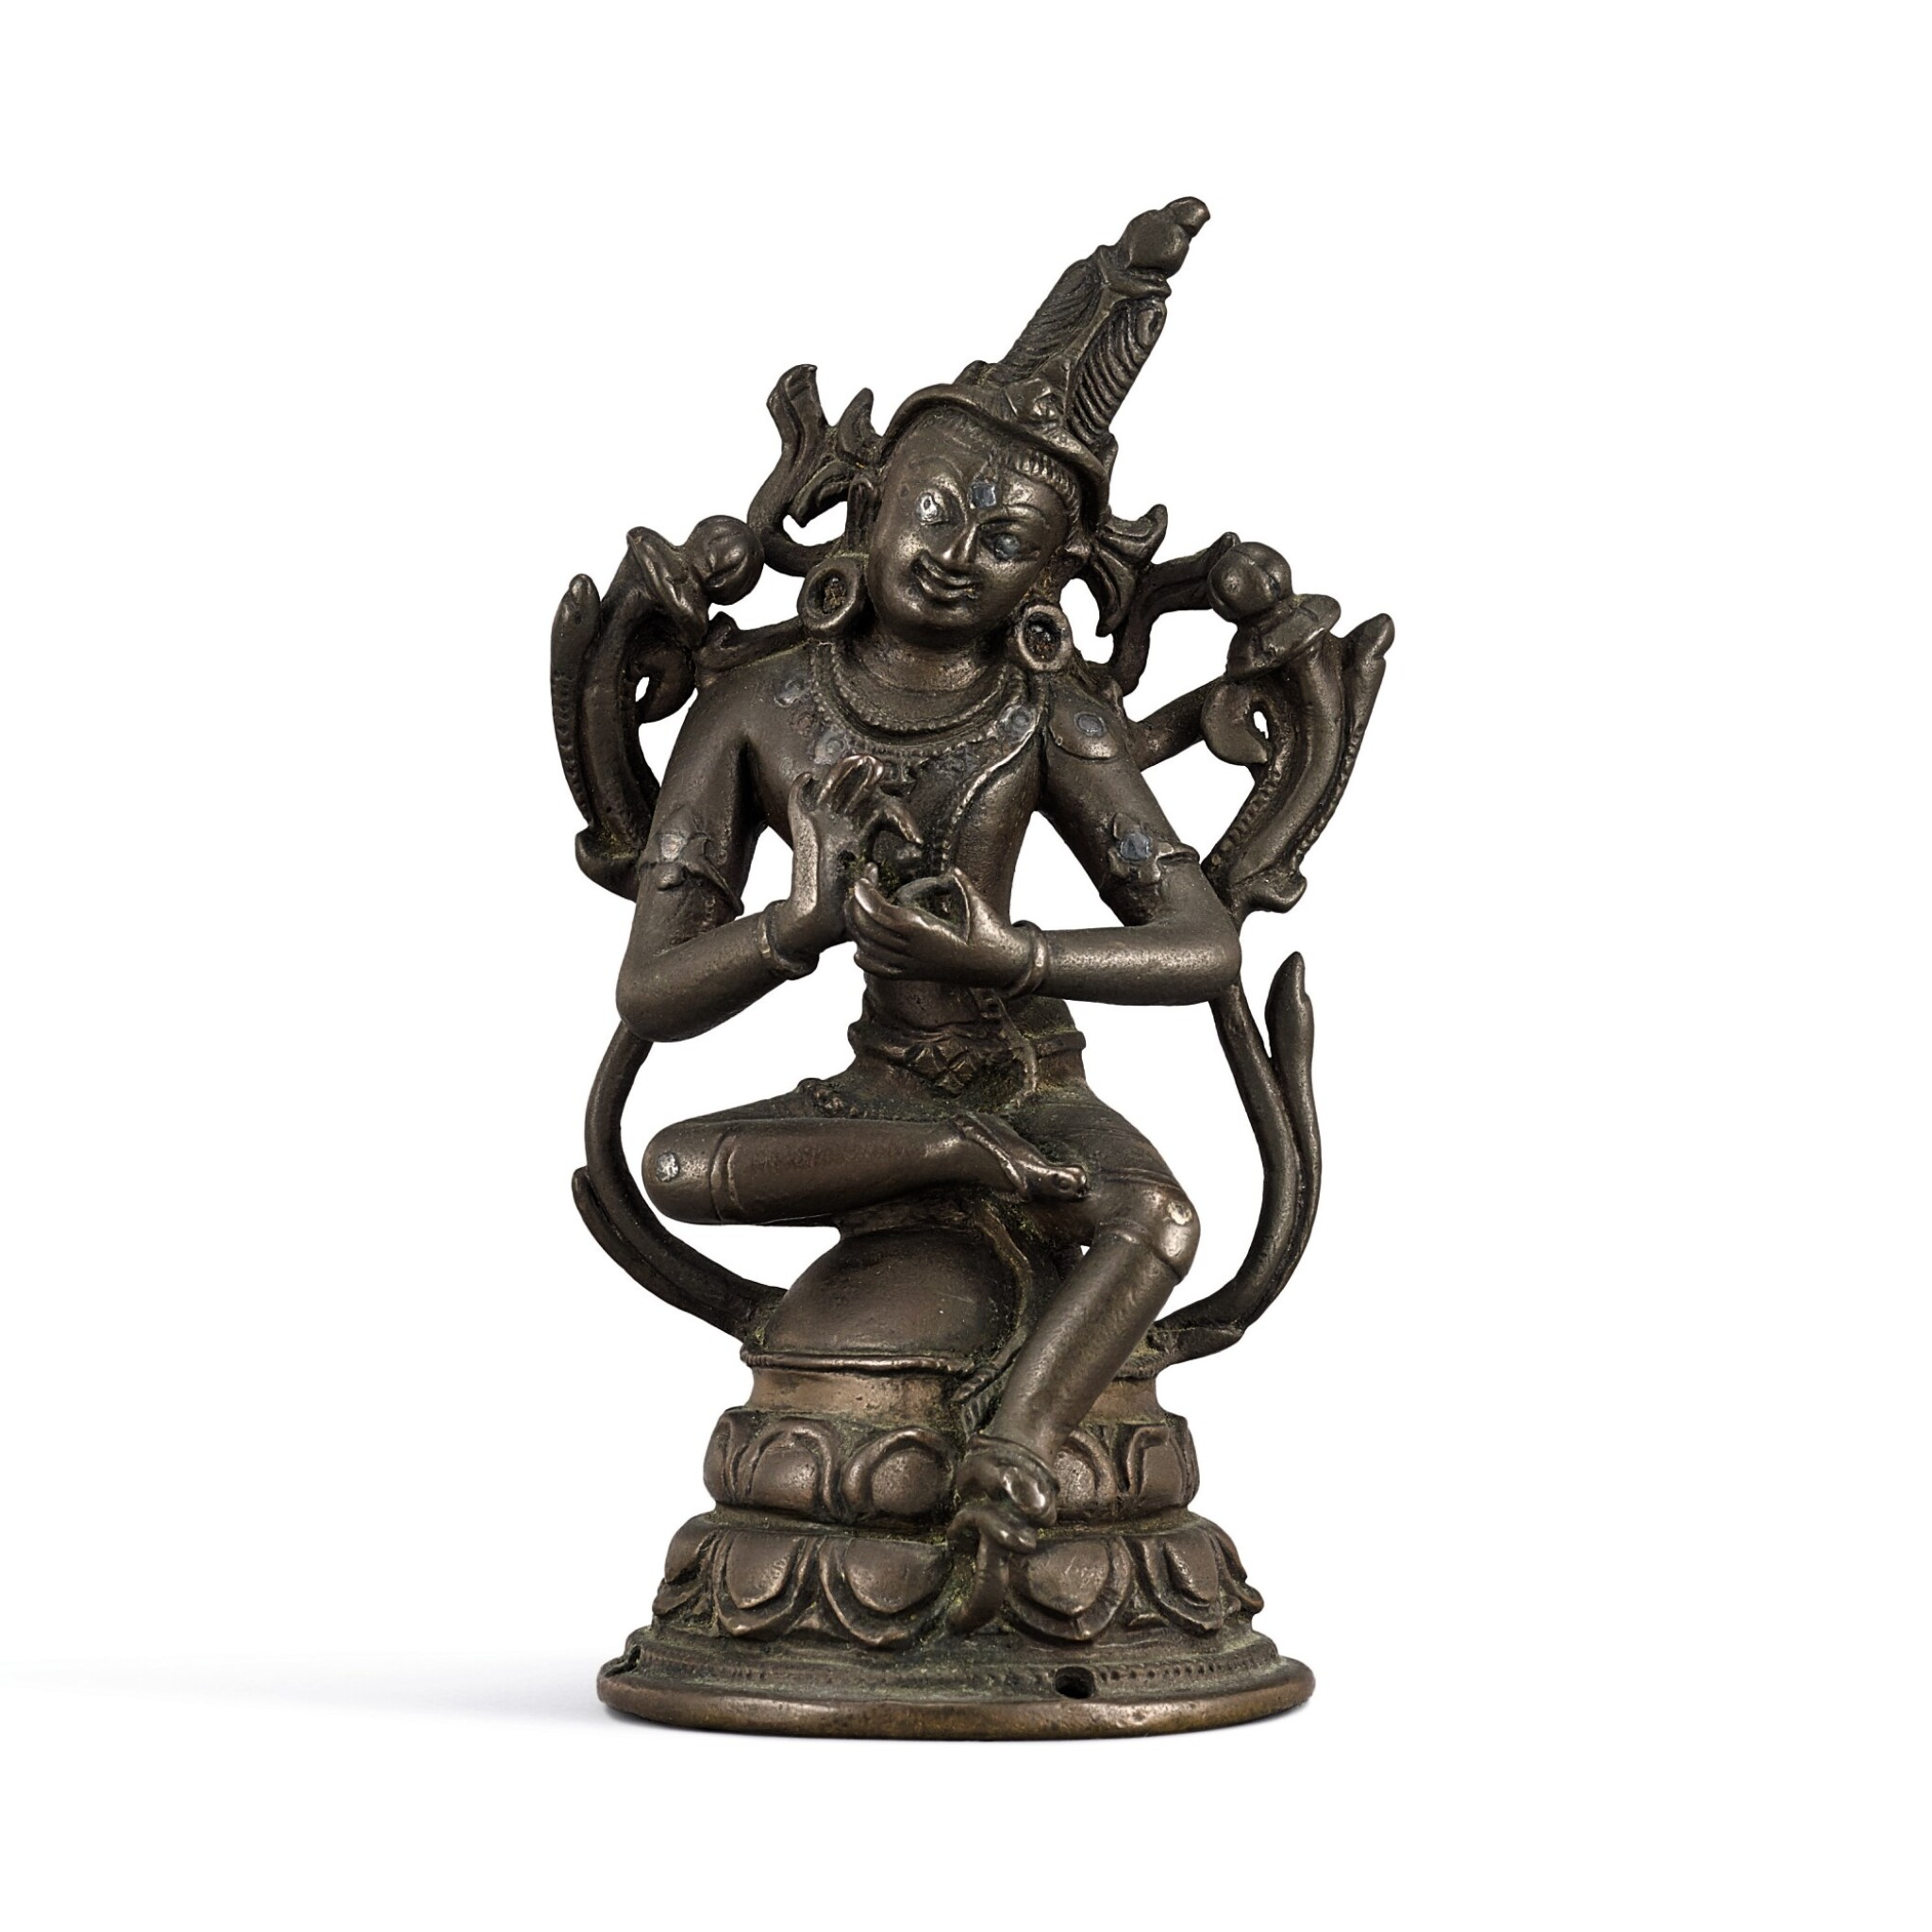 View full screen - View 1 of Lot 113. A silver-inlaid copper alloy figure of Avalokiteshvara Pala, Eastern India, 12th century   十二世紀 帕拉東印度銅錯銀觀世音菩薩坐像.